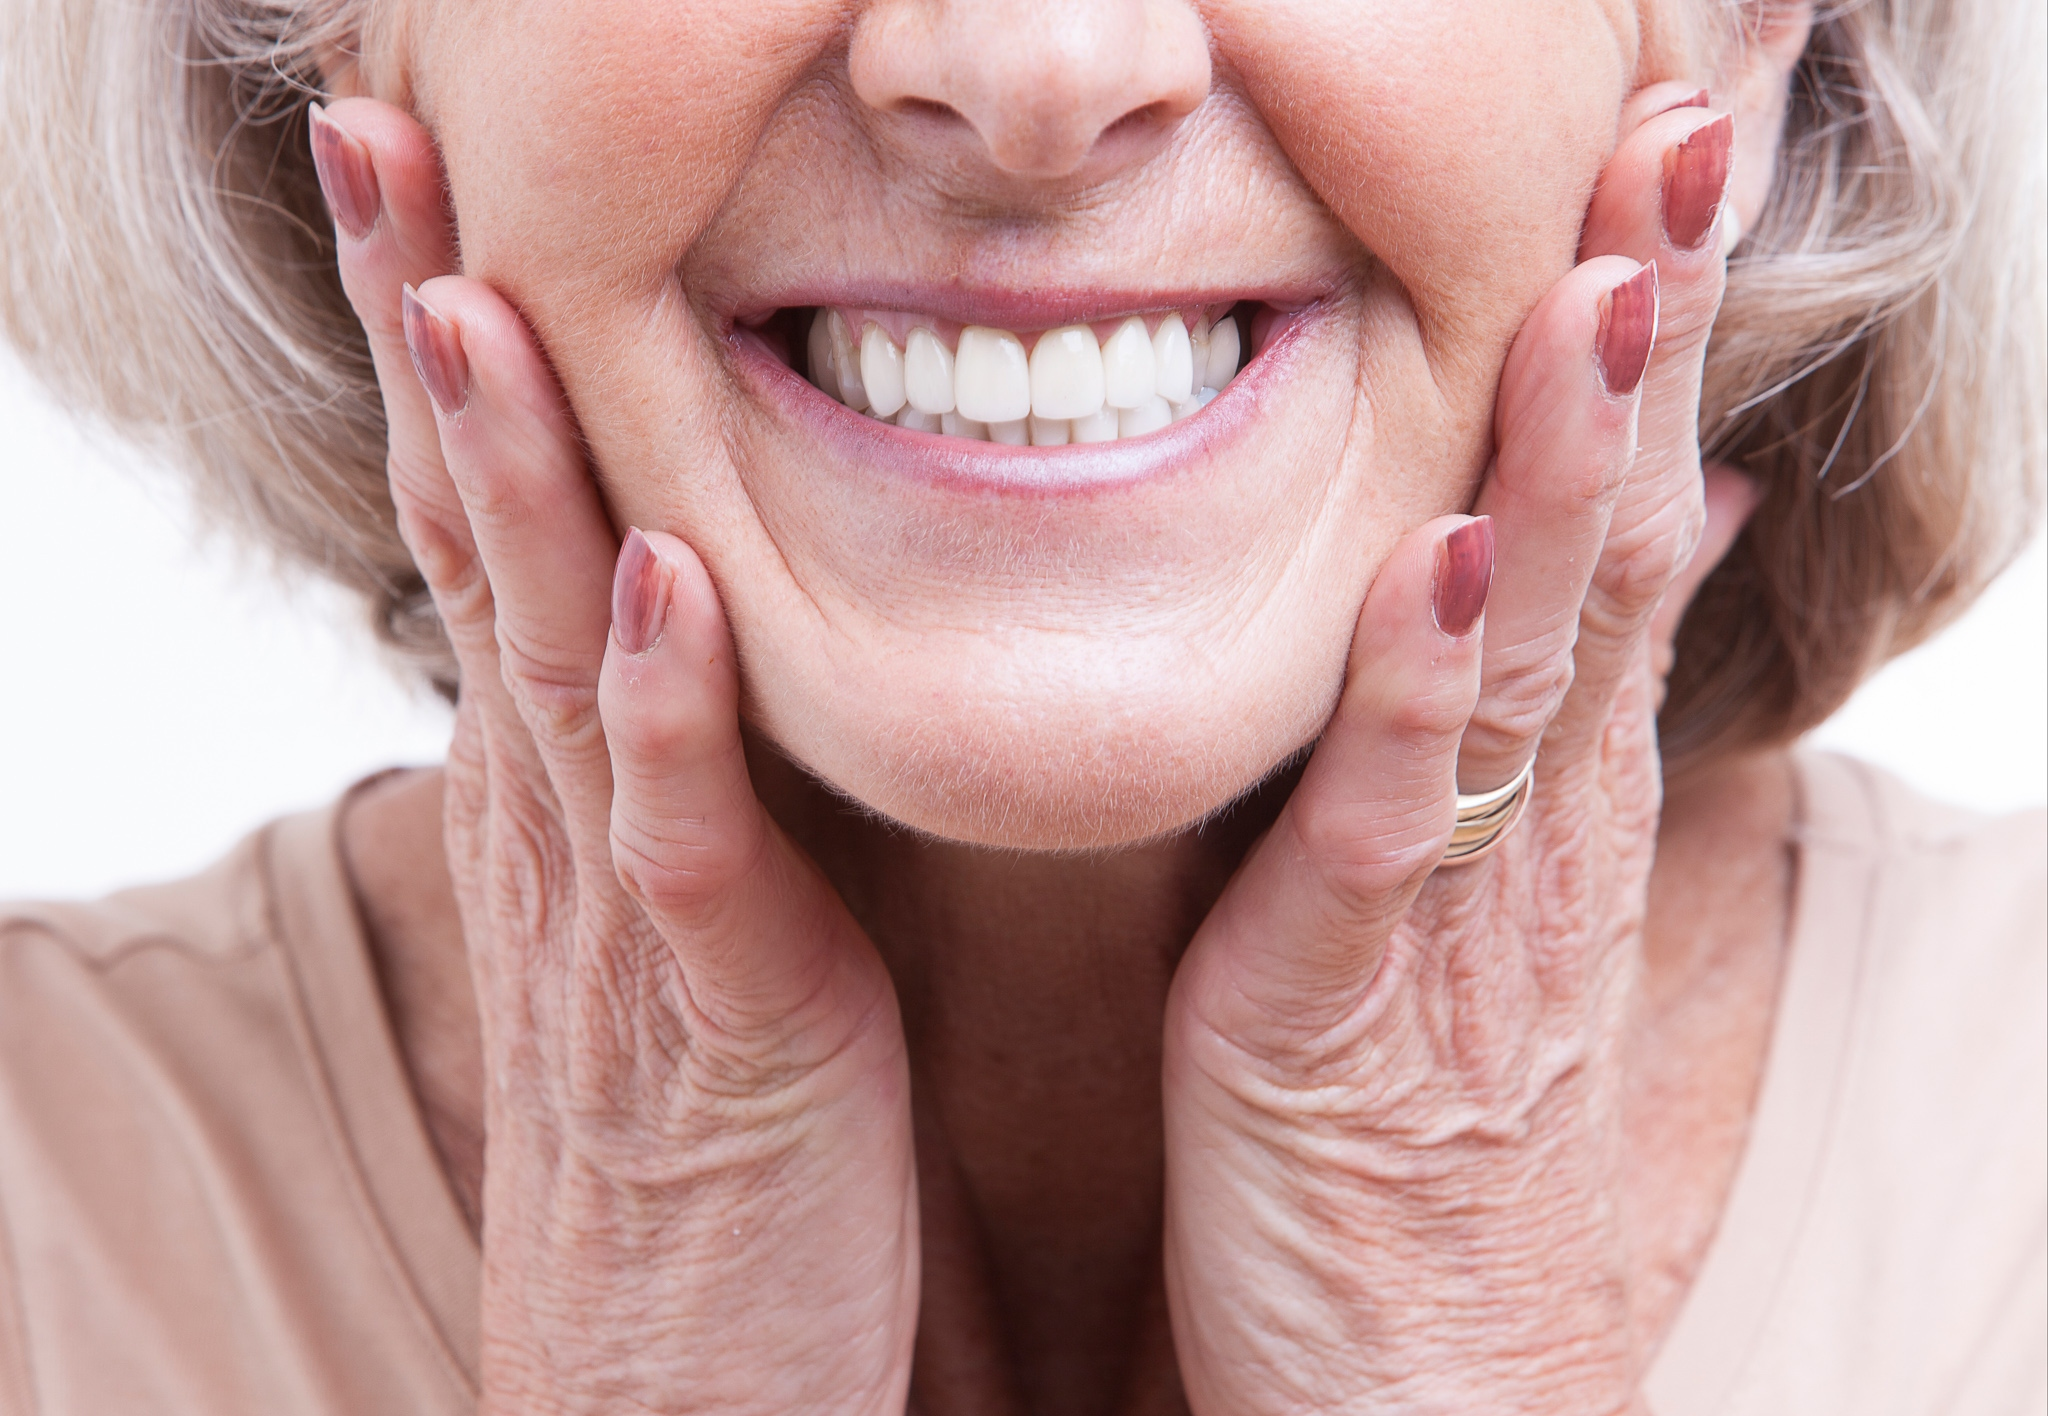 Woman smiling at newly cleaned white teeth